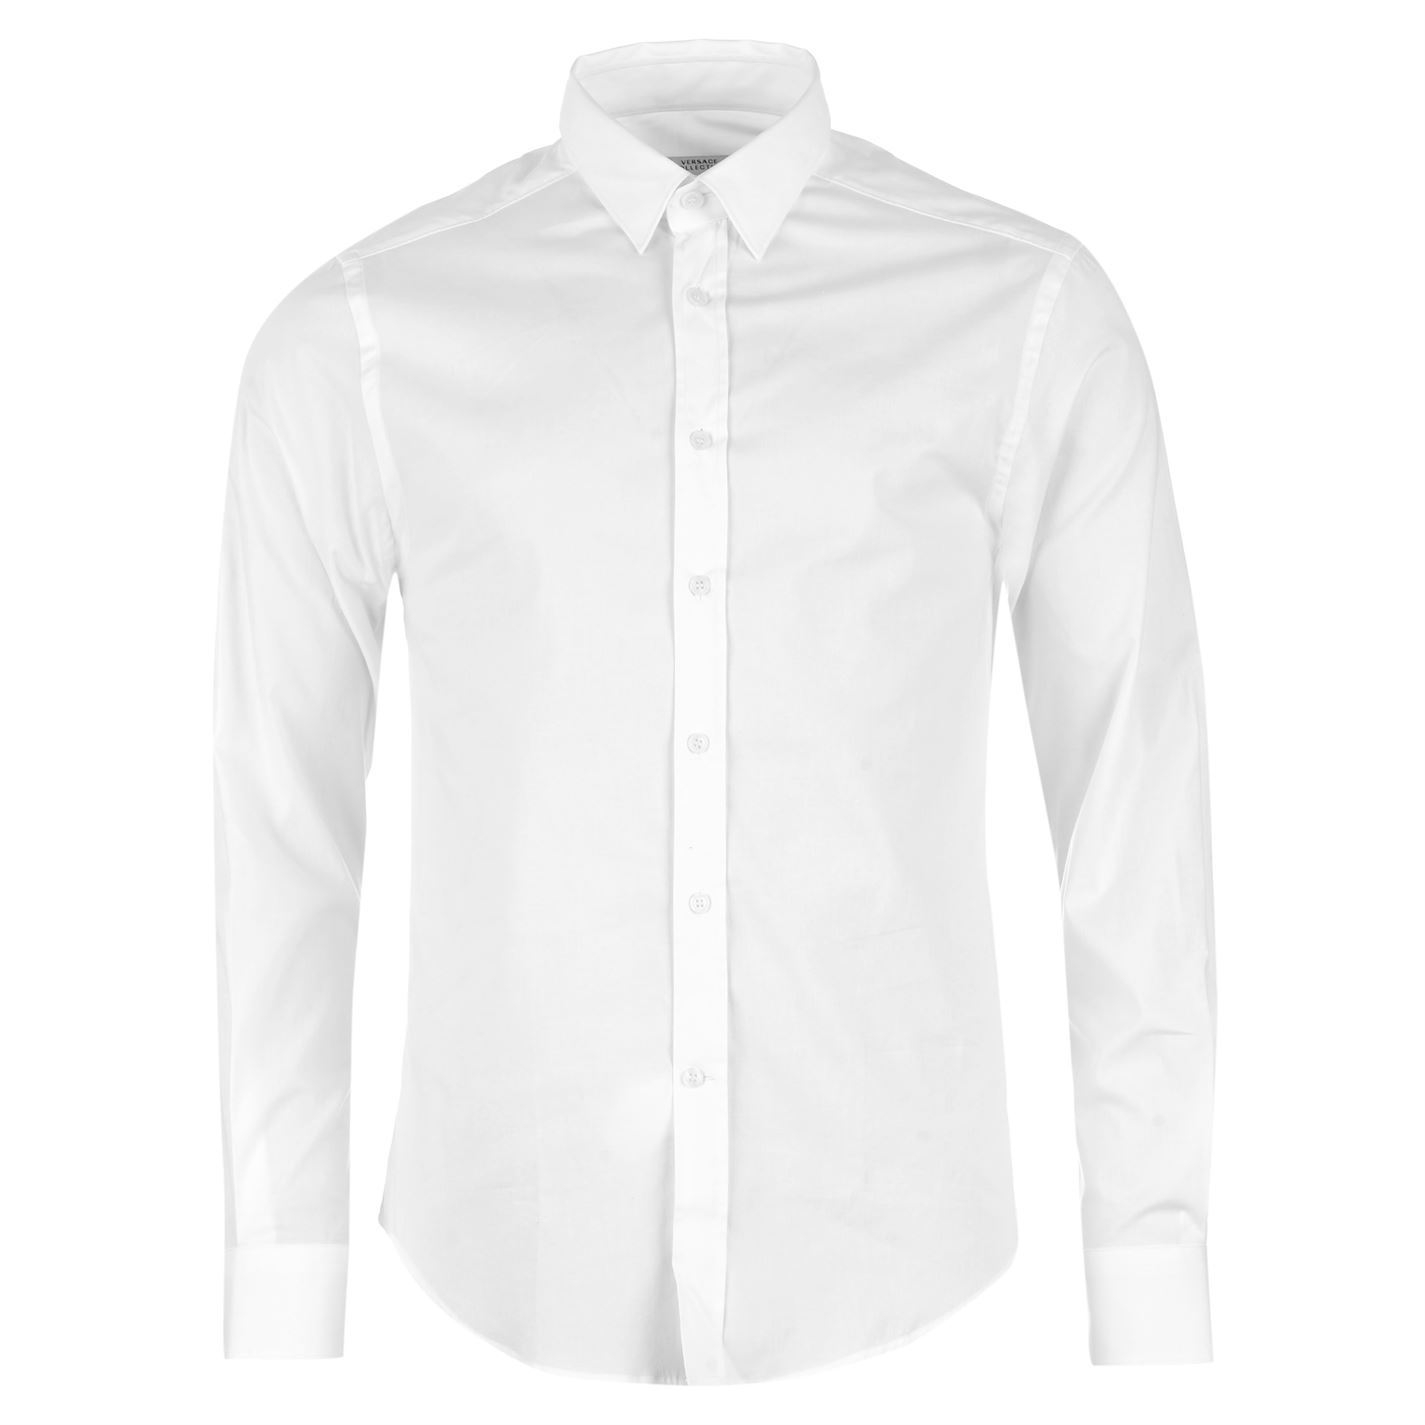 Versace collection mens woven shirt long sleeve cotton for Blue and white versace shirt